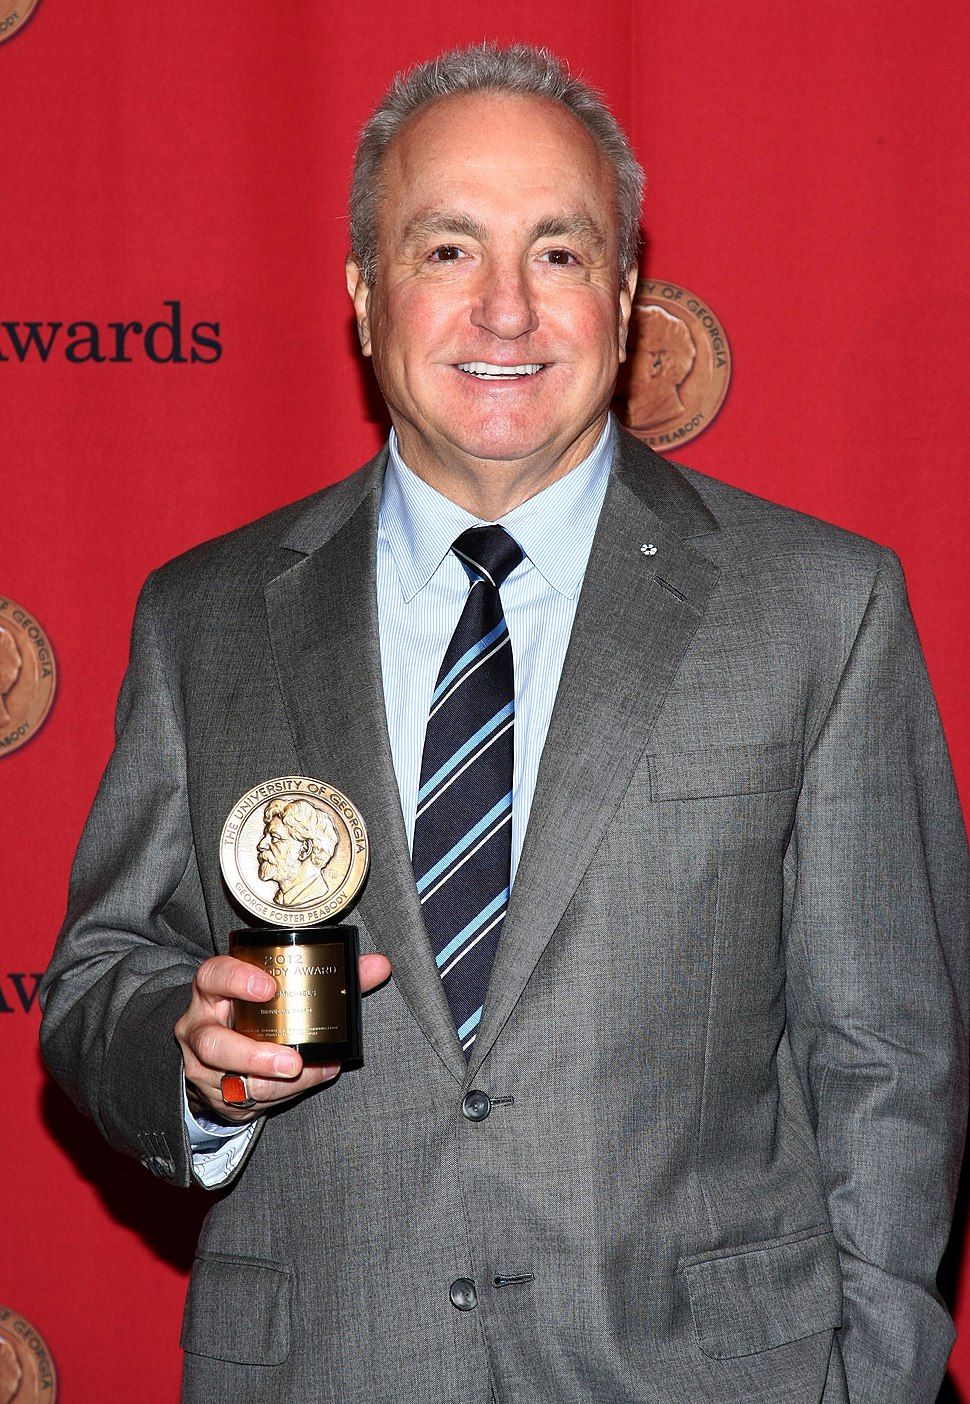 Lorne Michaels holding a Peabody Award at the 2013 Peabody Award Ceremony